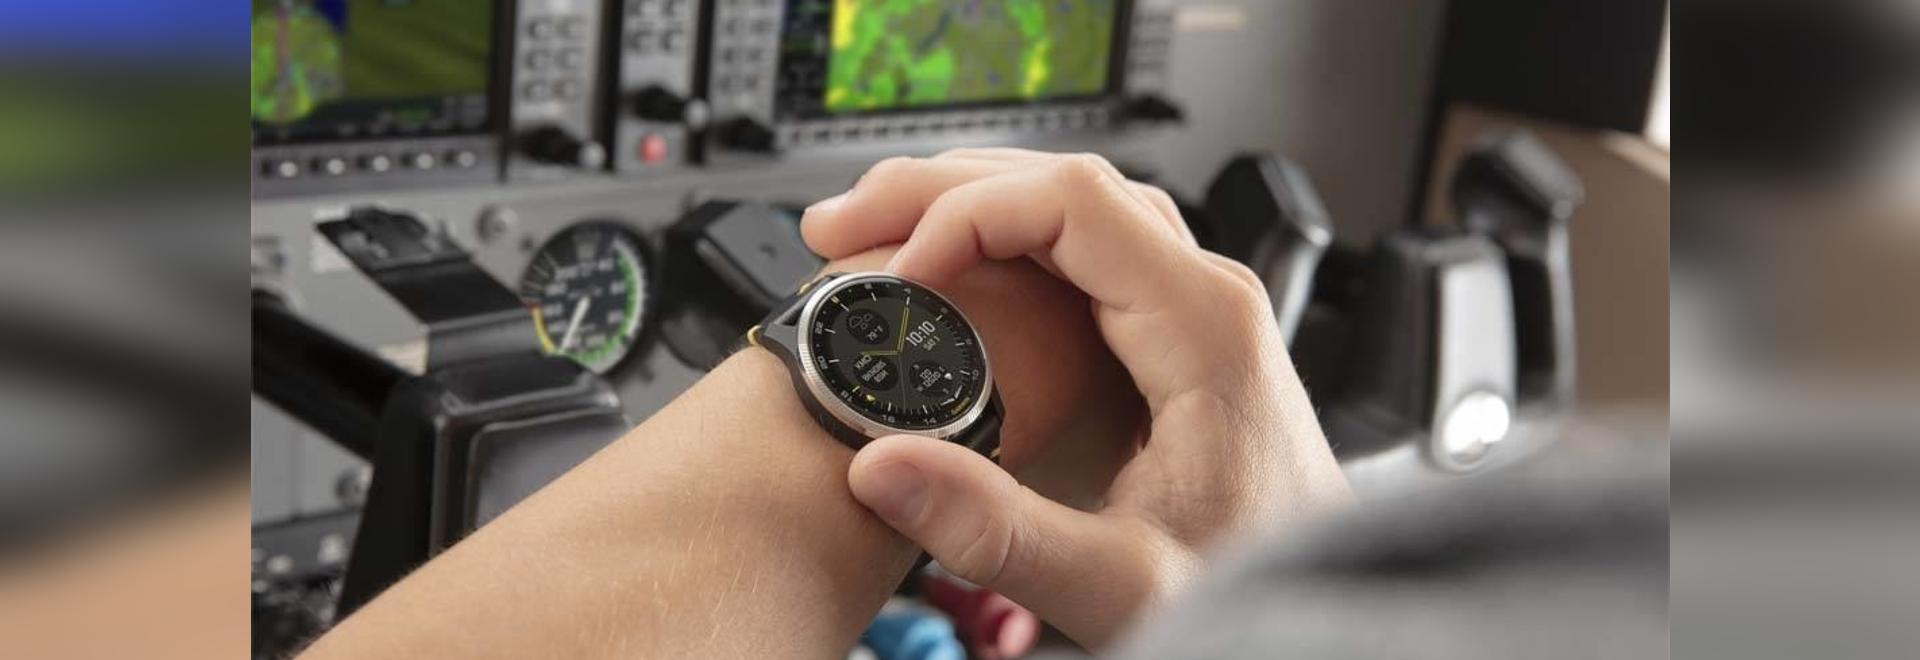 The D2 can be used in flight as a back-up navigation and pulse oximeter source.